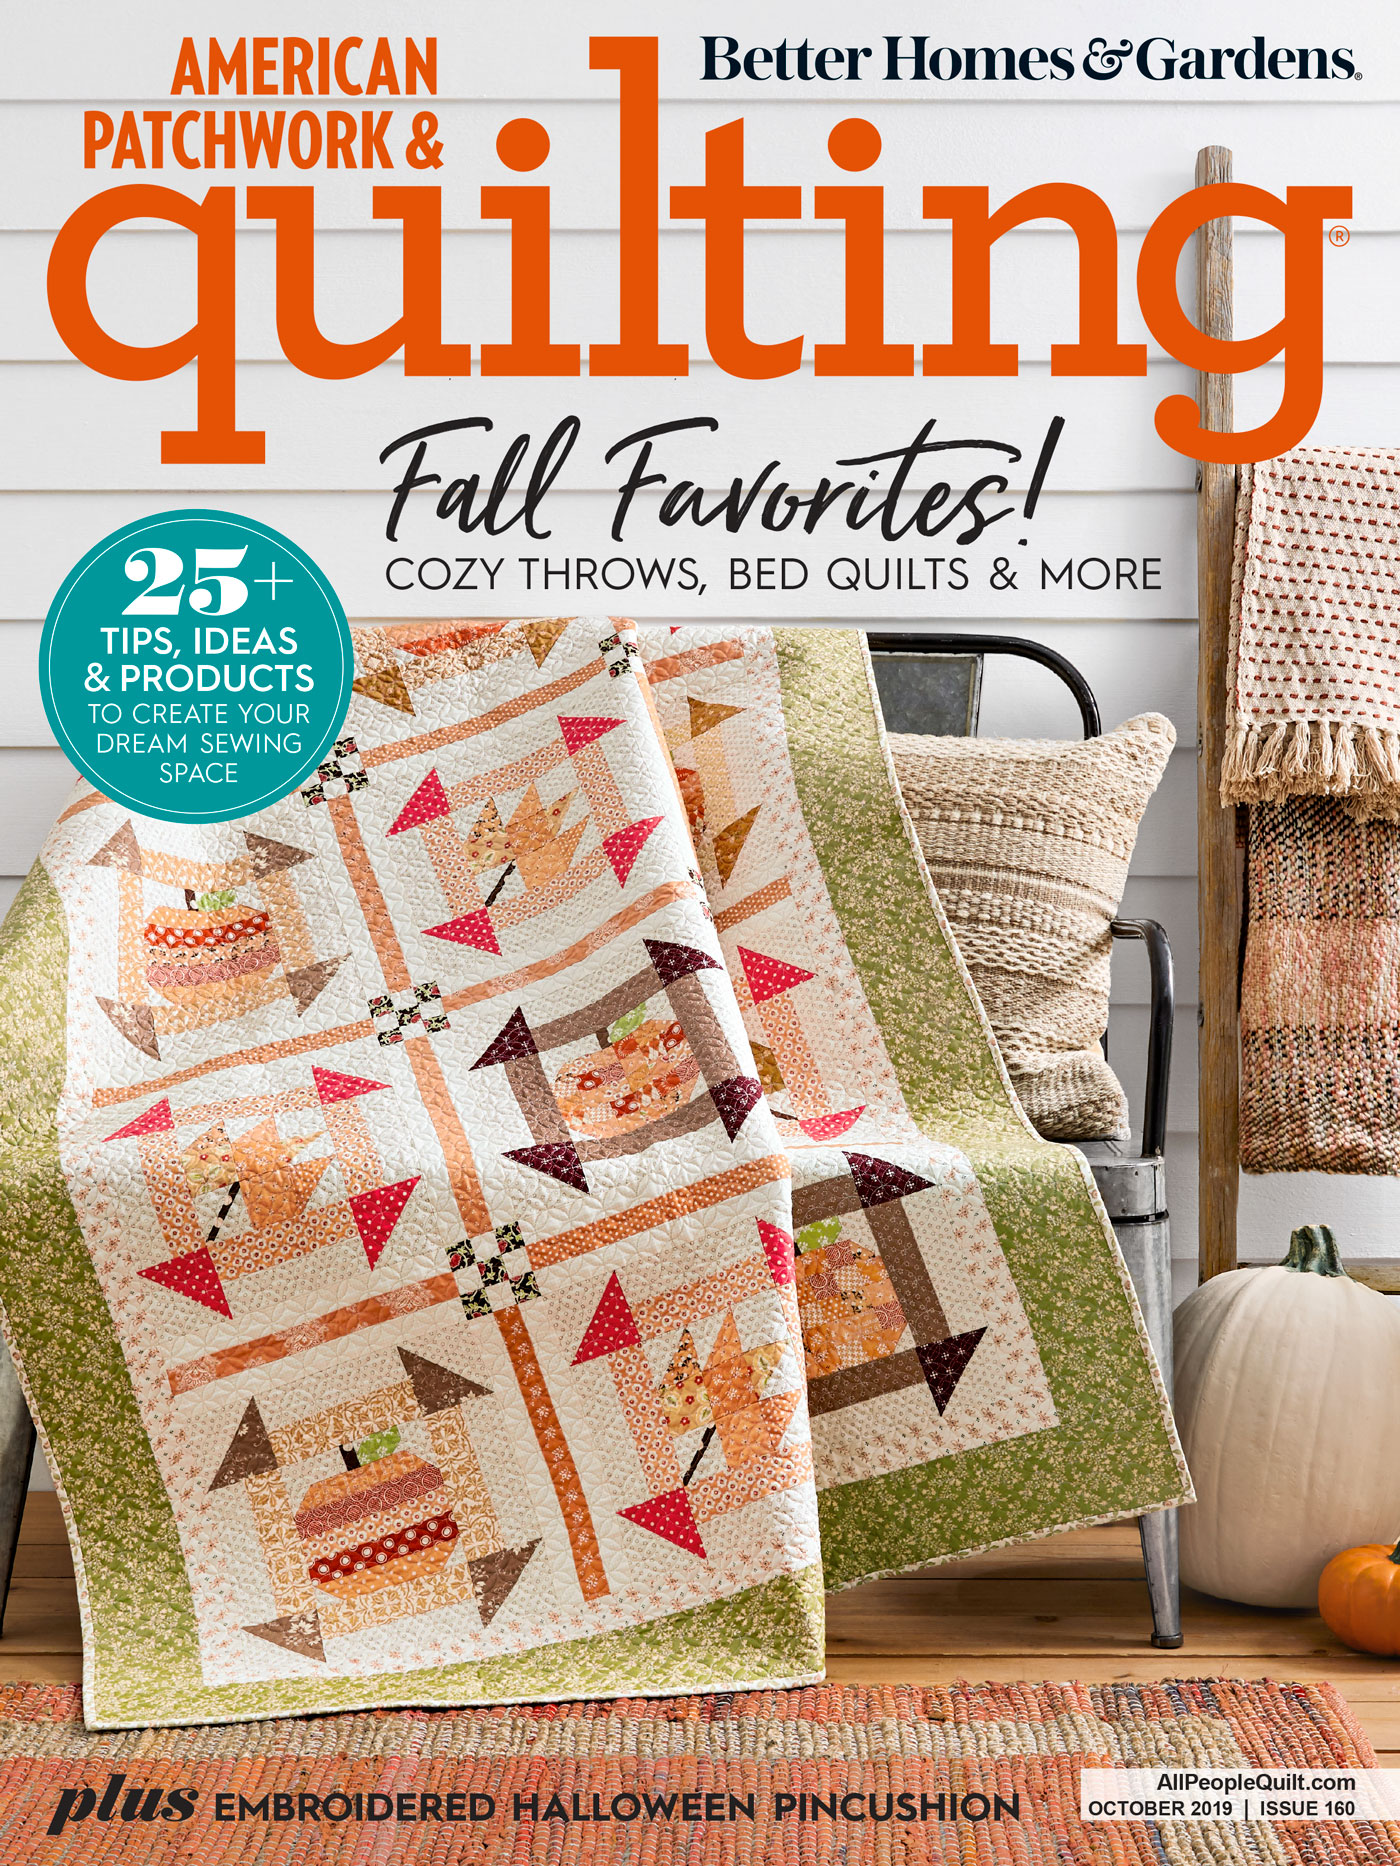 American Patchwork & Quilting October 2019